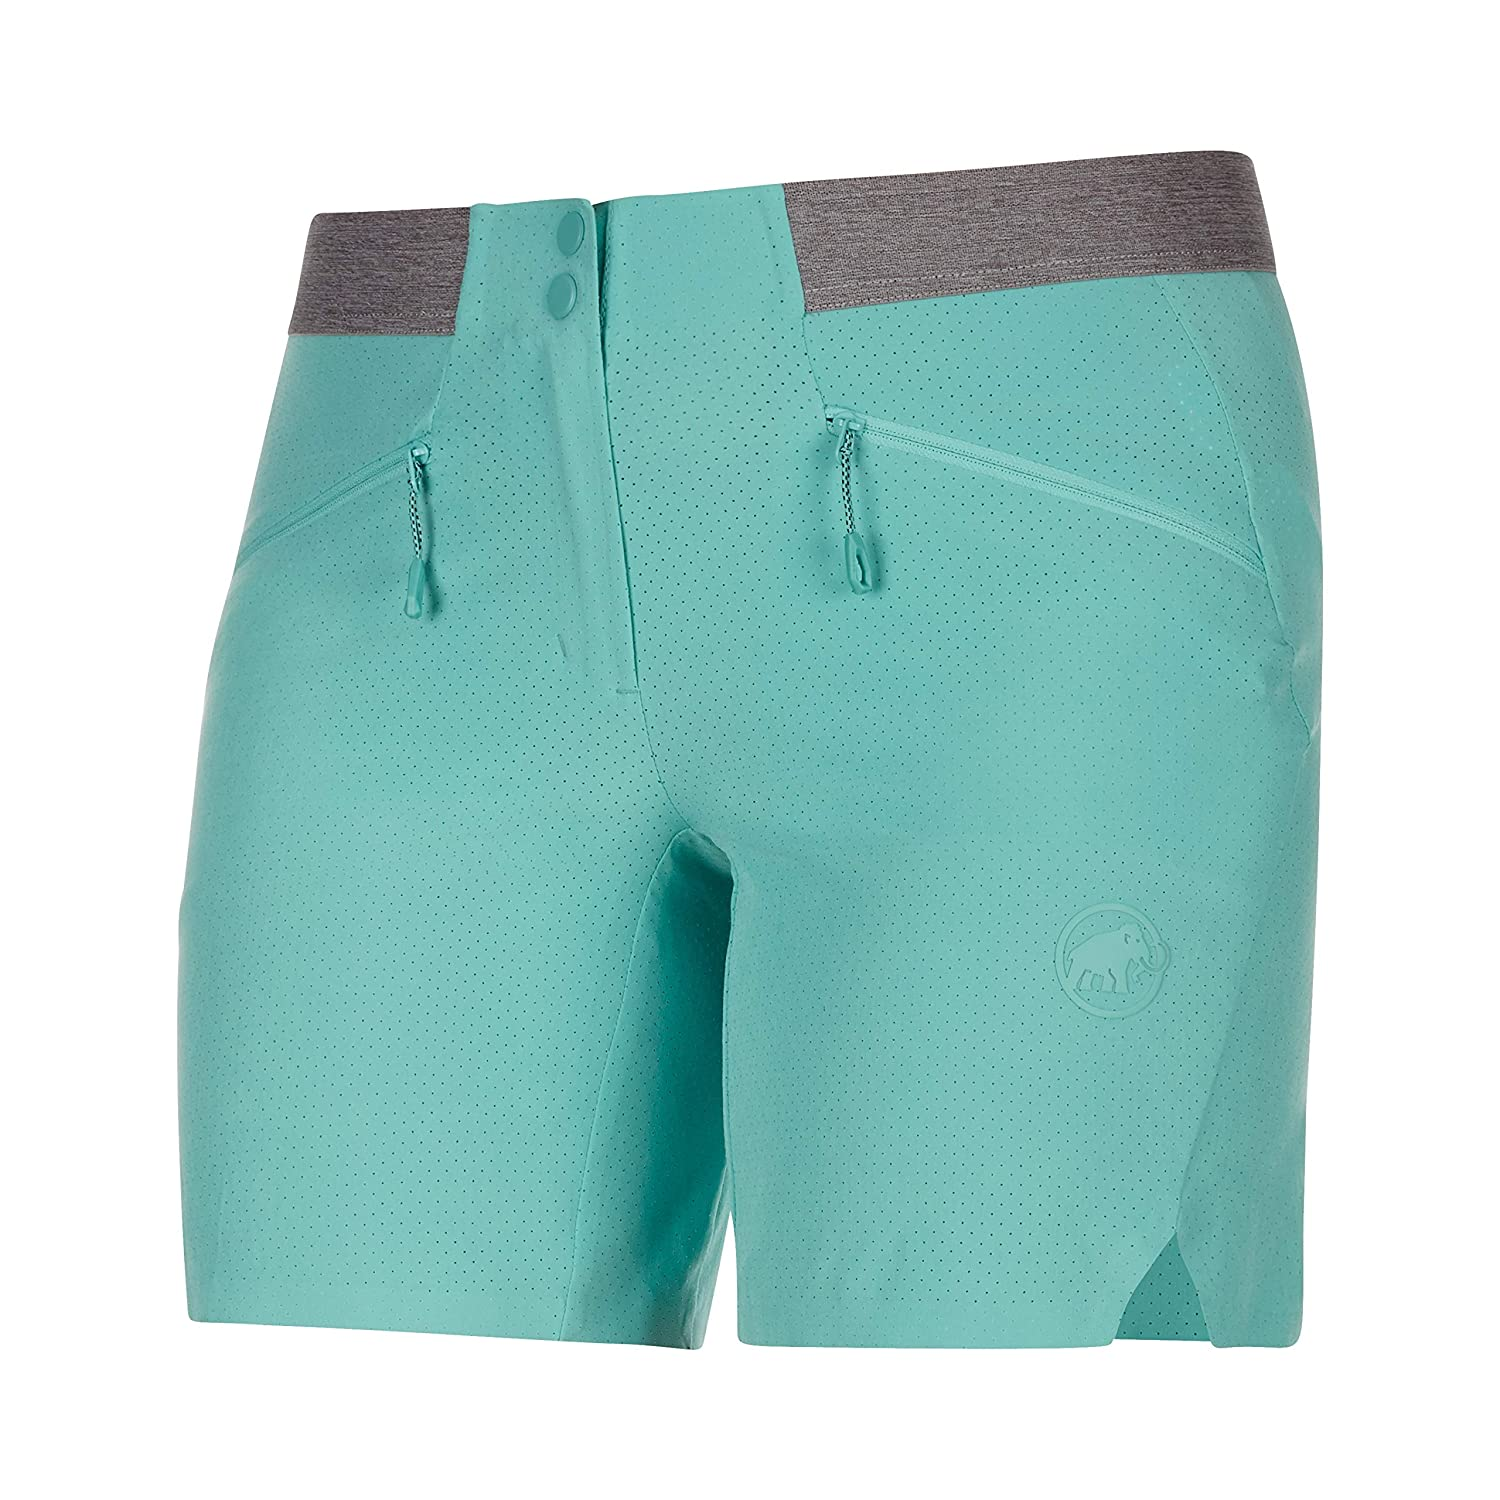 Waters Taille 34 Mammut Sertig courtes Femme